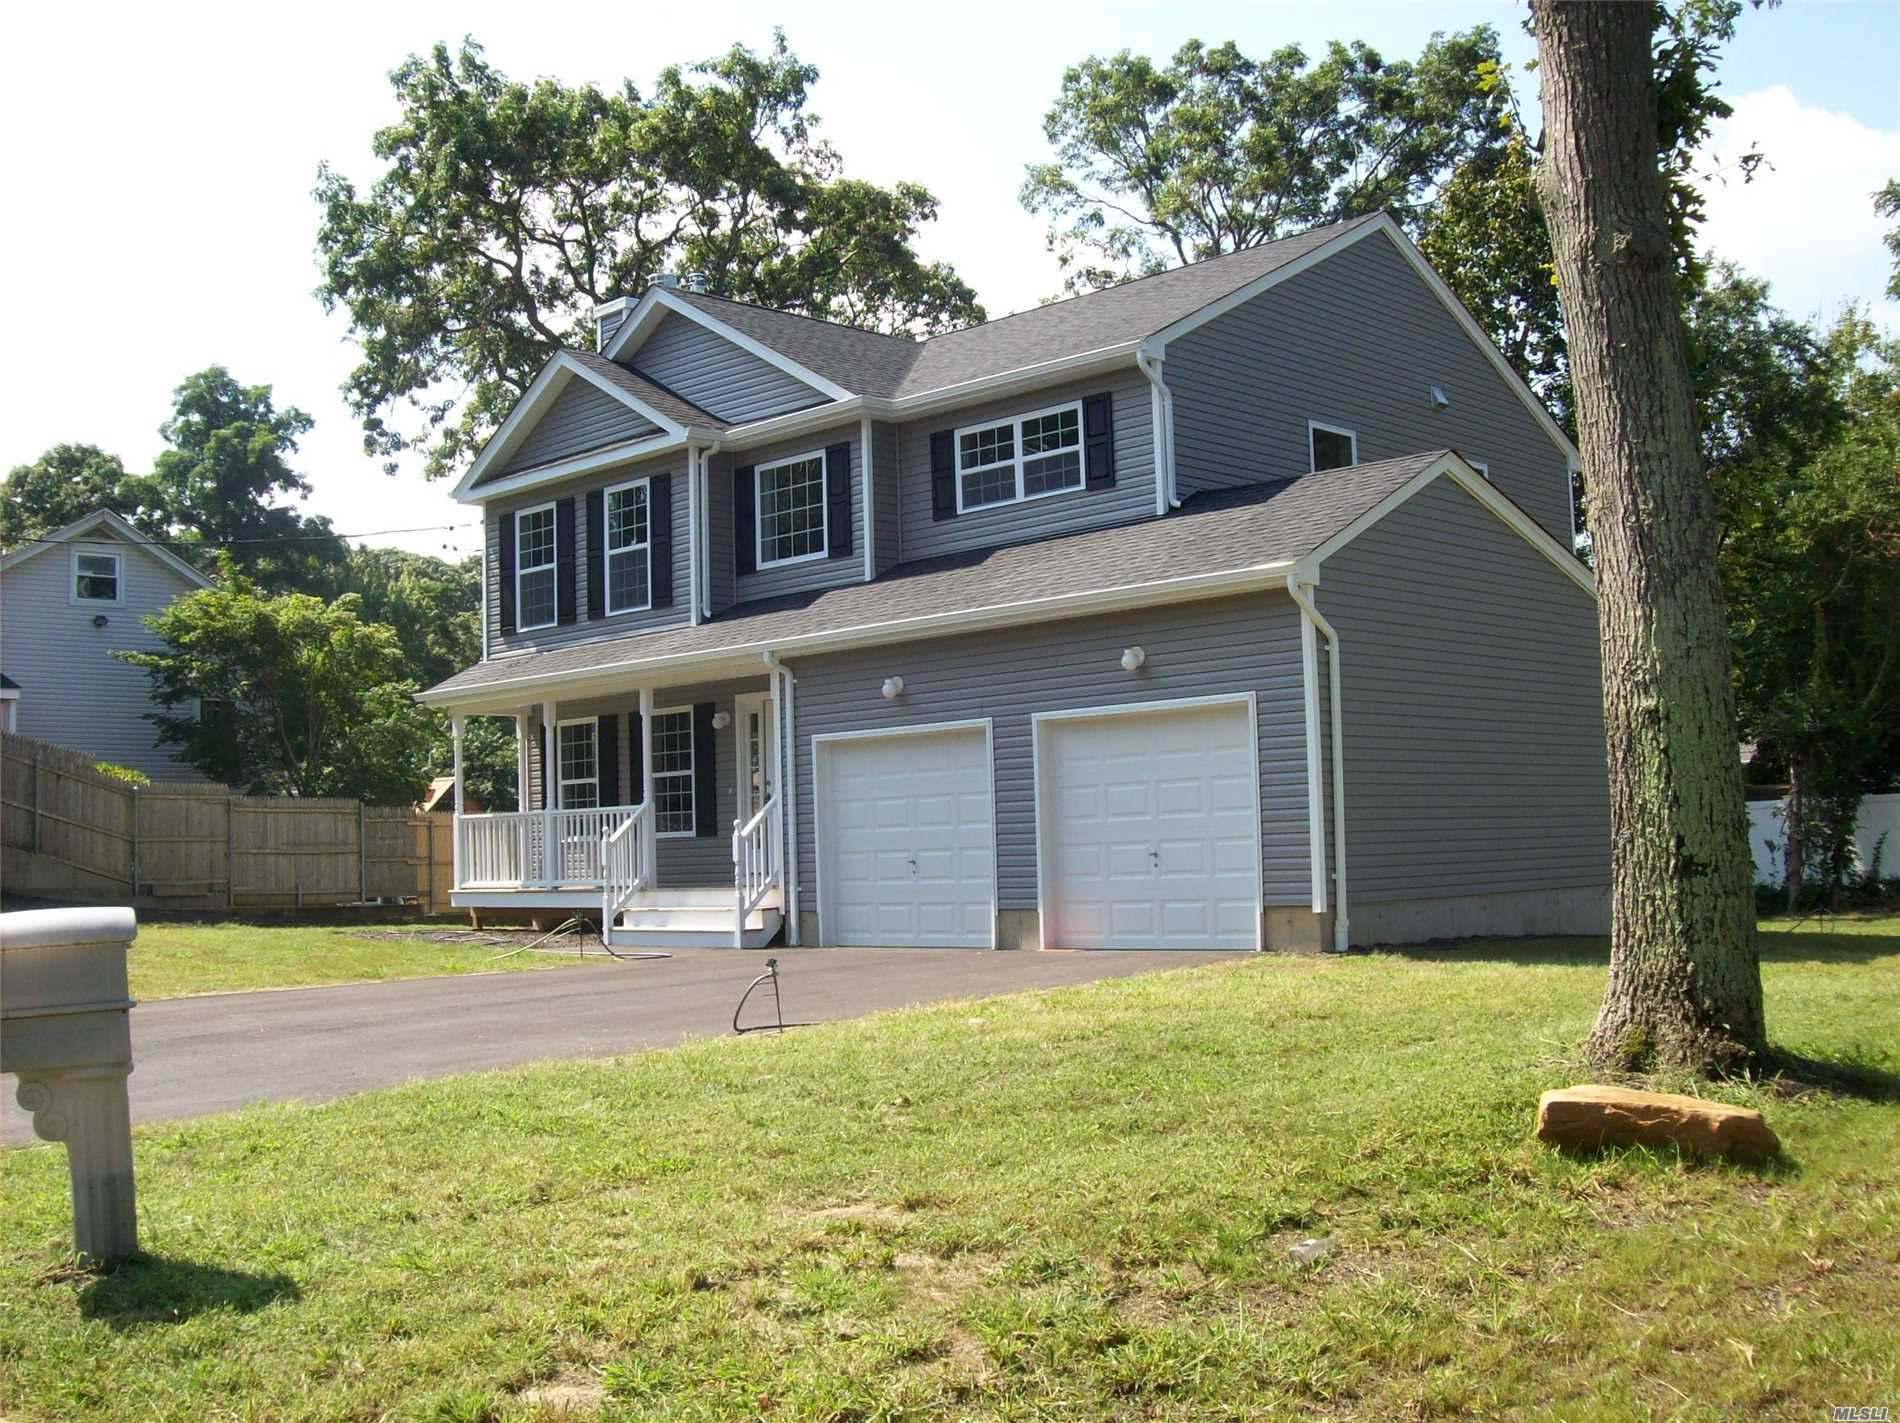 New 4 Bed Rm 2.5 Bath Colonial With A 2 Car Garage In Miller Place School District. $35, 000.00 Upgrade Pkg Incl In List Price. Pkg Includes 2nd Car Garage, Andersen Windows & Sliding Door. Recessed Lights. Central Air, #1 Oak Hardwood Floors And Railings, Fireplace, 200 Amp Elec. U Shape Kitchen With Granite Counter, Full 850 Sq Ft Basement With Outside Entrance. 2 Story Foyer. Taxes Shown Are For Land Only And Will Be Reassessed. True Taxes Tbd